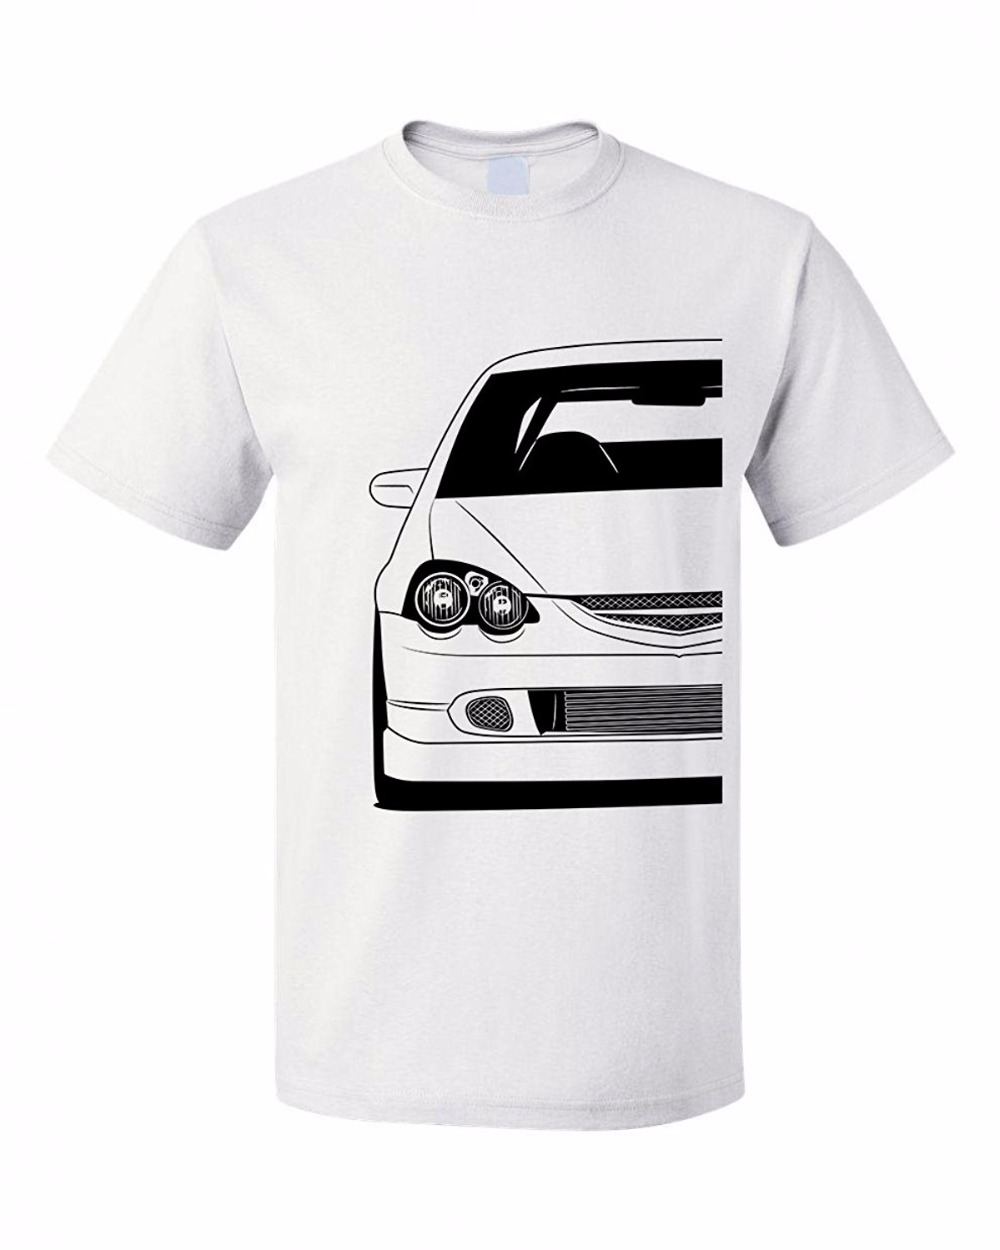 Hot Sale Fashion Acura RSX DC Tshirt Tee Shirtin T - Acura shirt